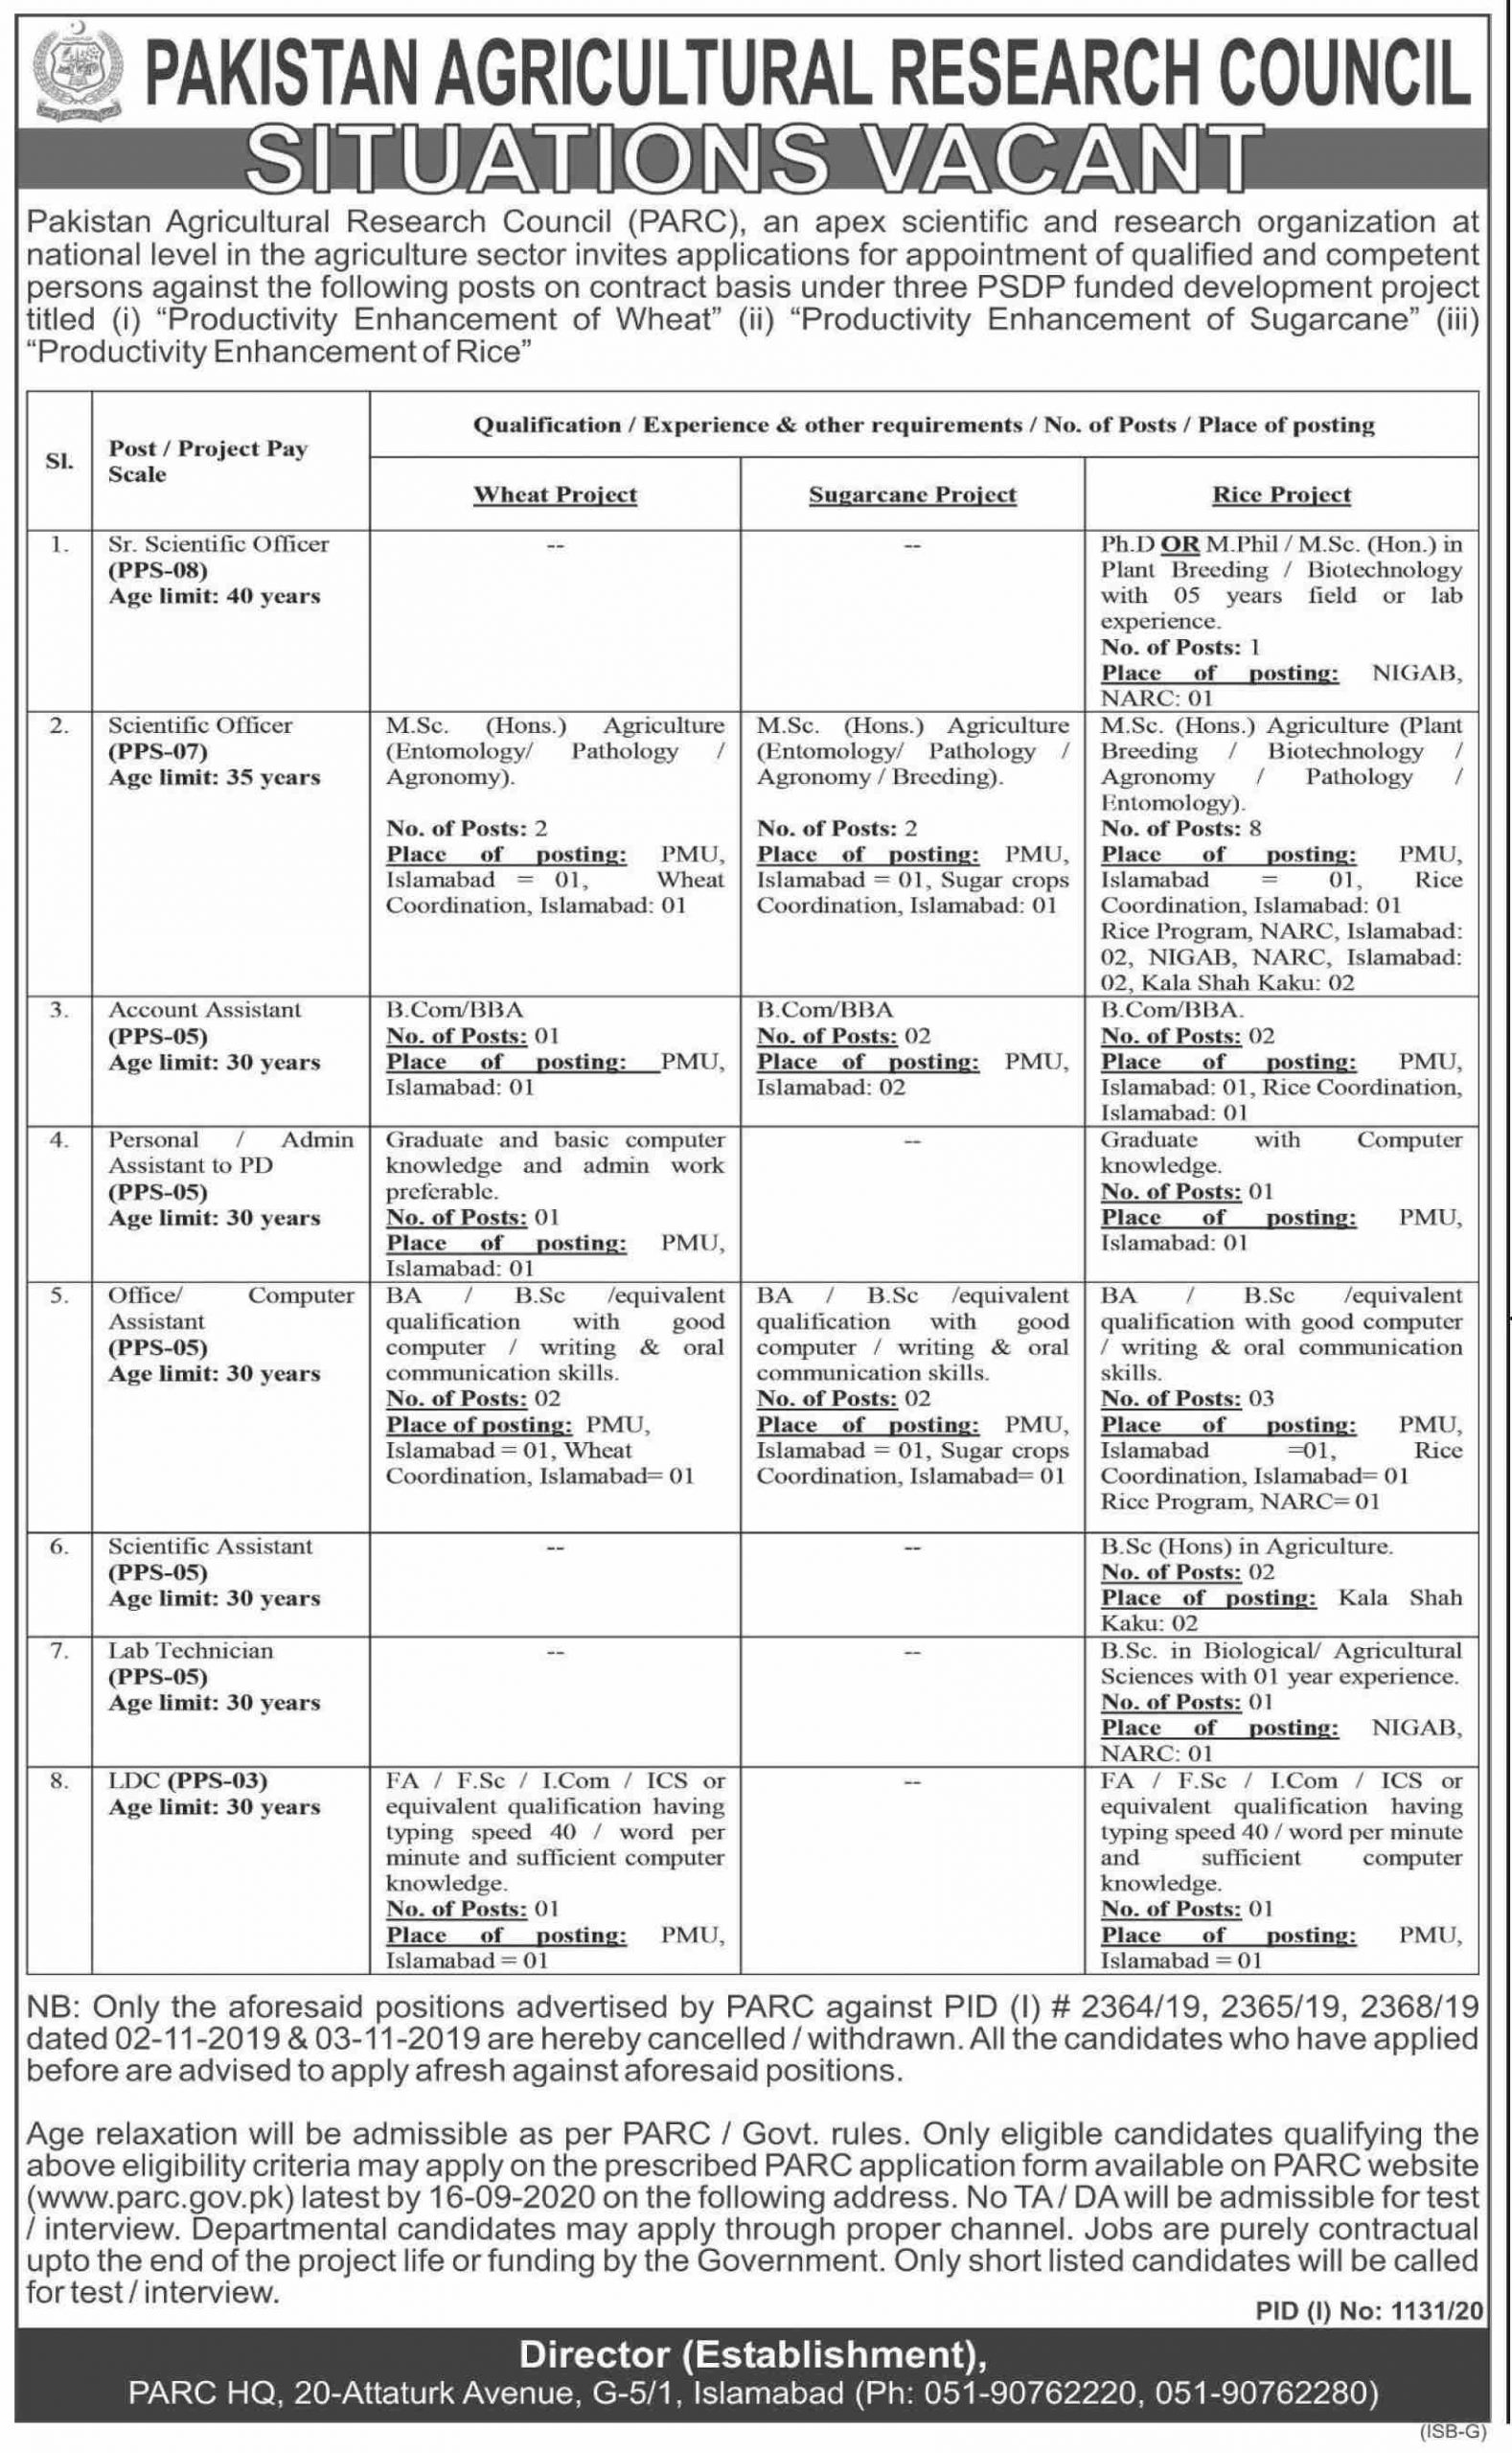 PARC Jobs Pakistan Agriculture And Research Jobs